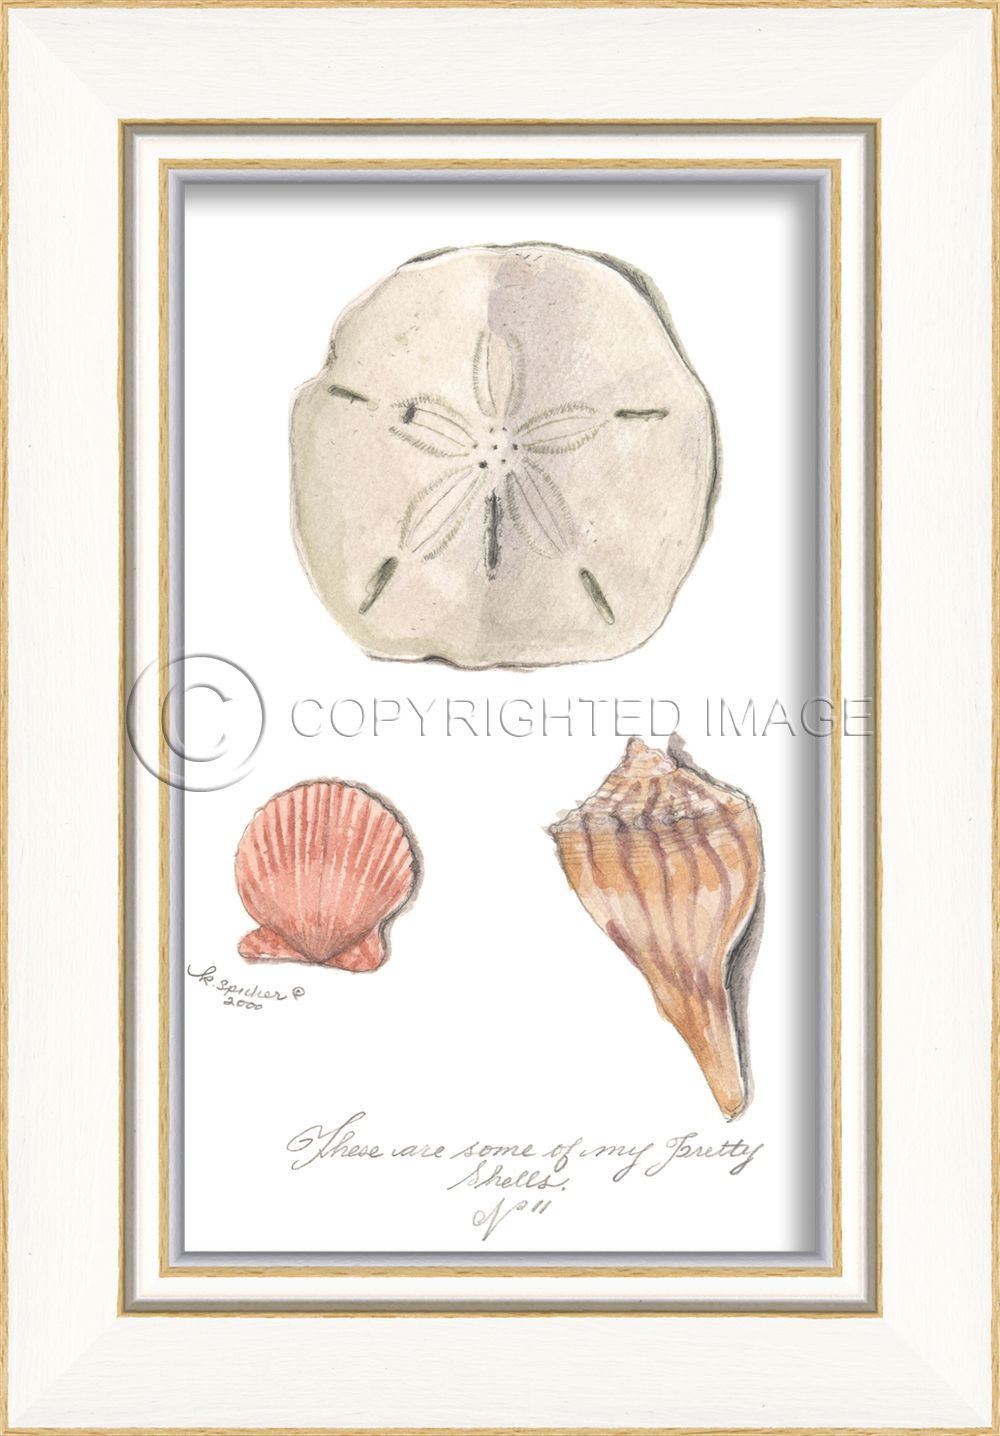 Three Shells (White Frame) - Beach Painting By Kolene Spicher, Spicher and Company - Distinguished Imports